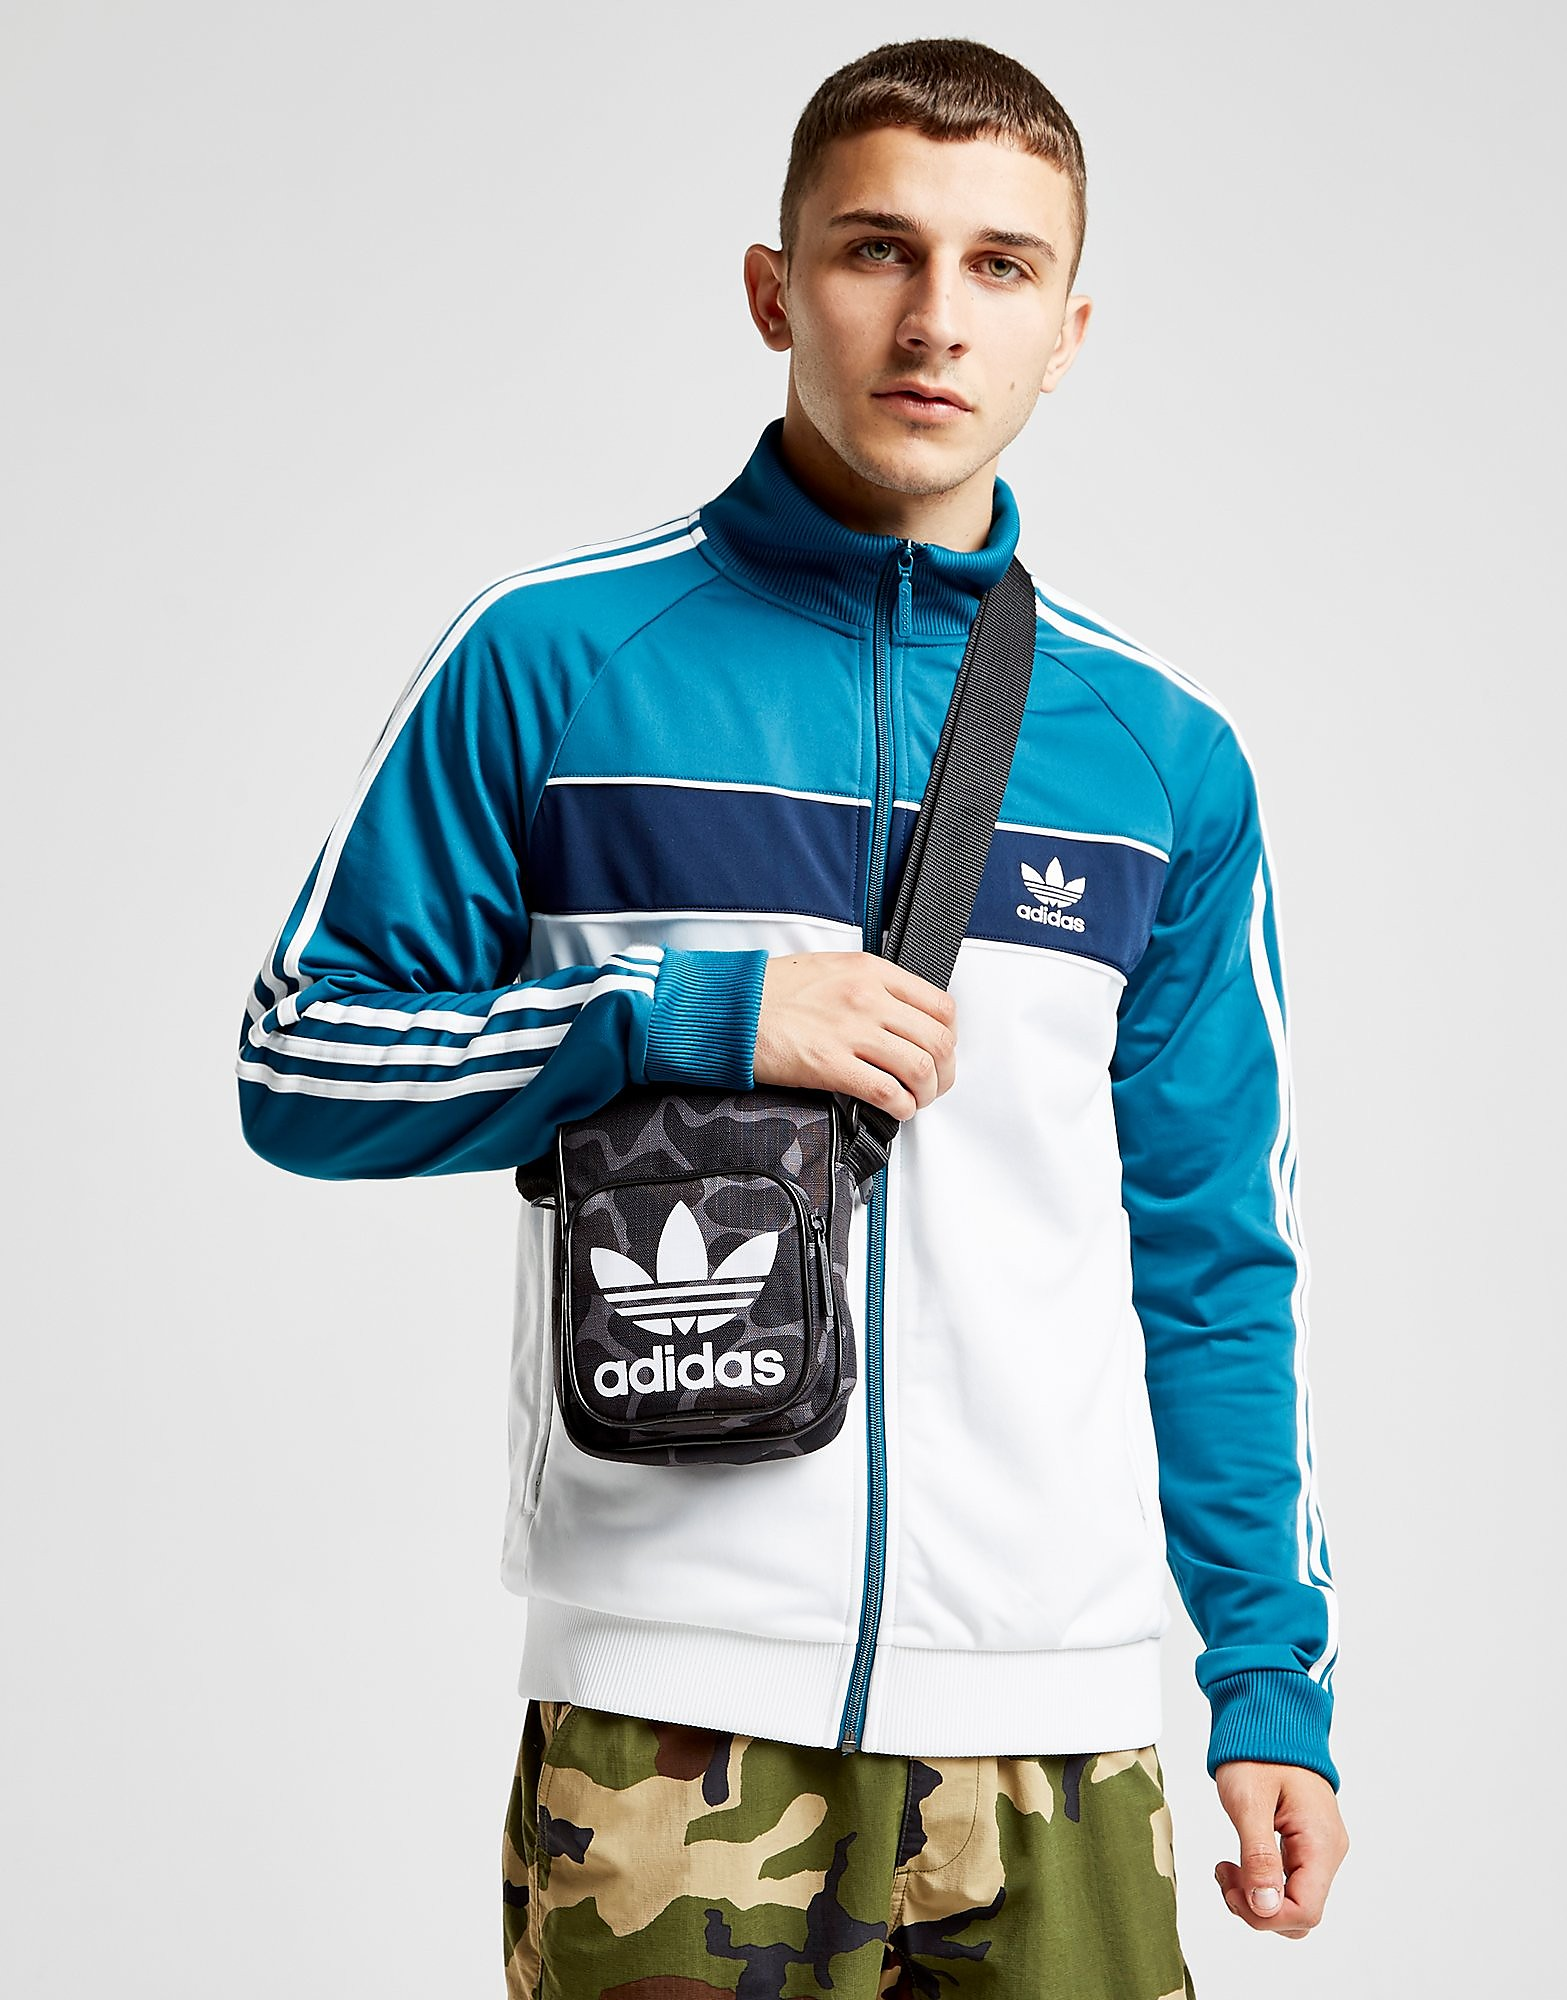 adidas Originals Mini Bag